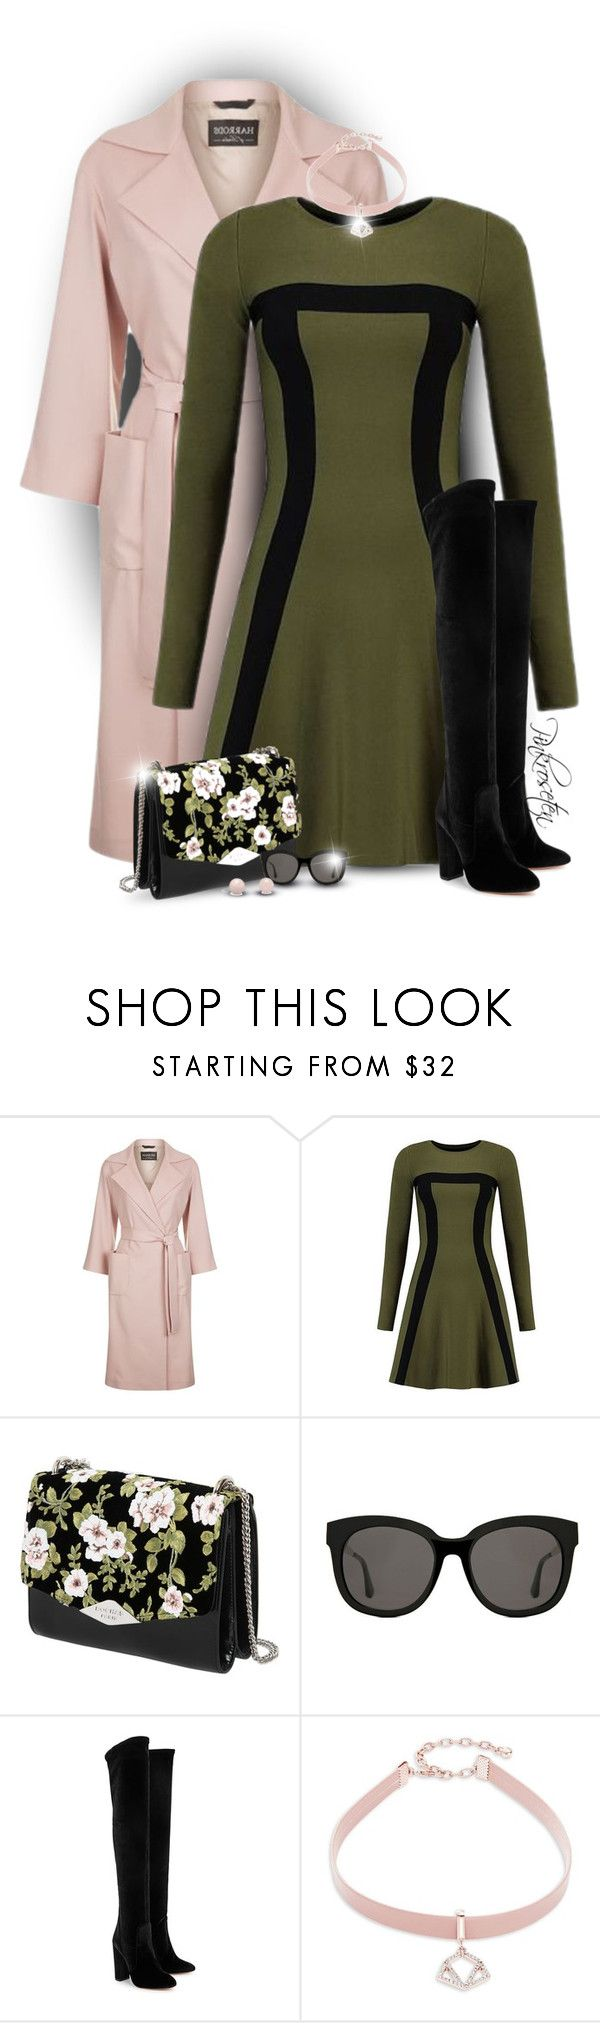 """""""Pink & Green"""" by pinkroseten ❤ liked on Polyvore featuring Harrods, Rochas, Gentle Monster, Aquazzura and Design Lab"""